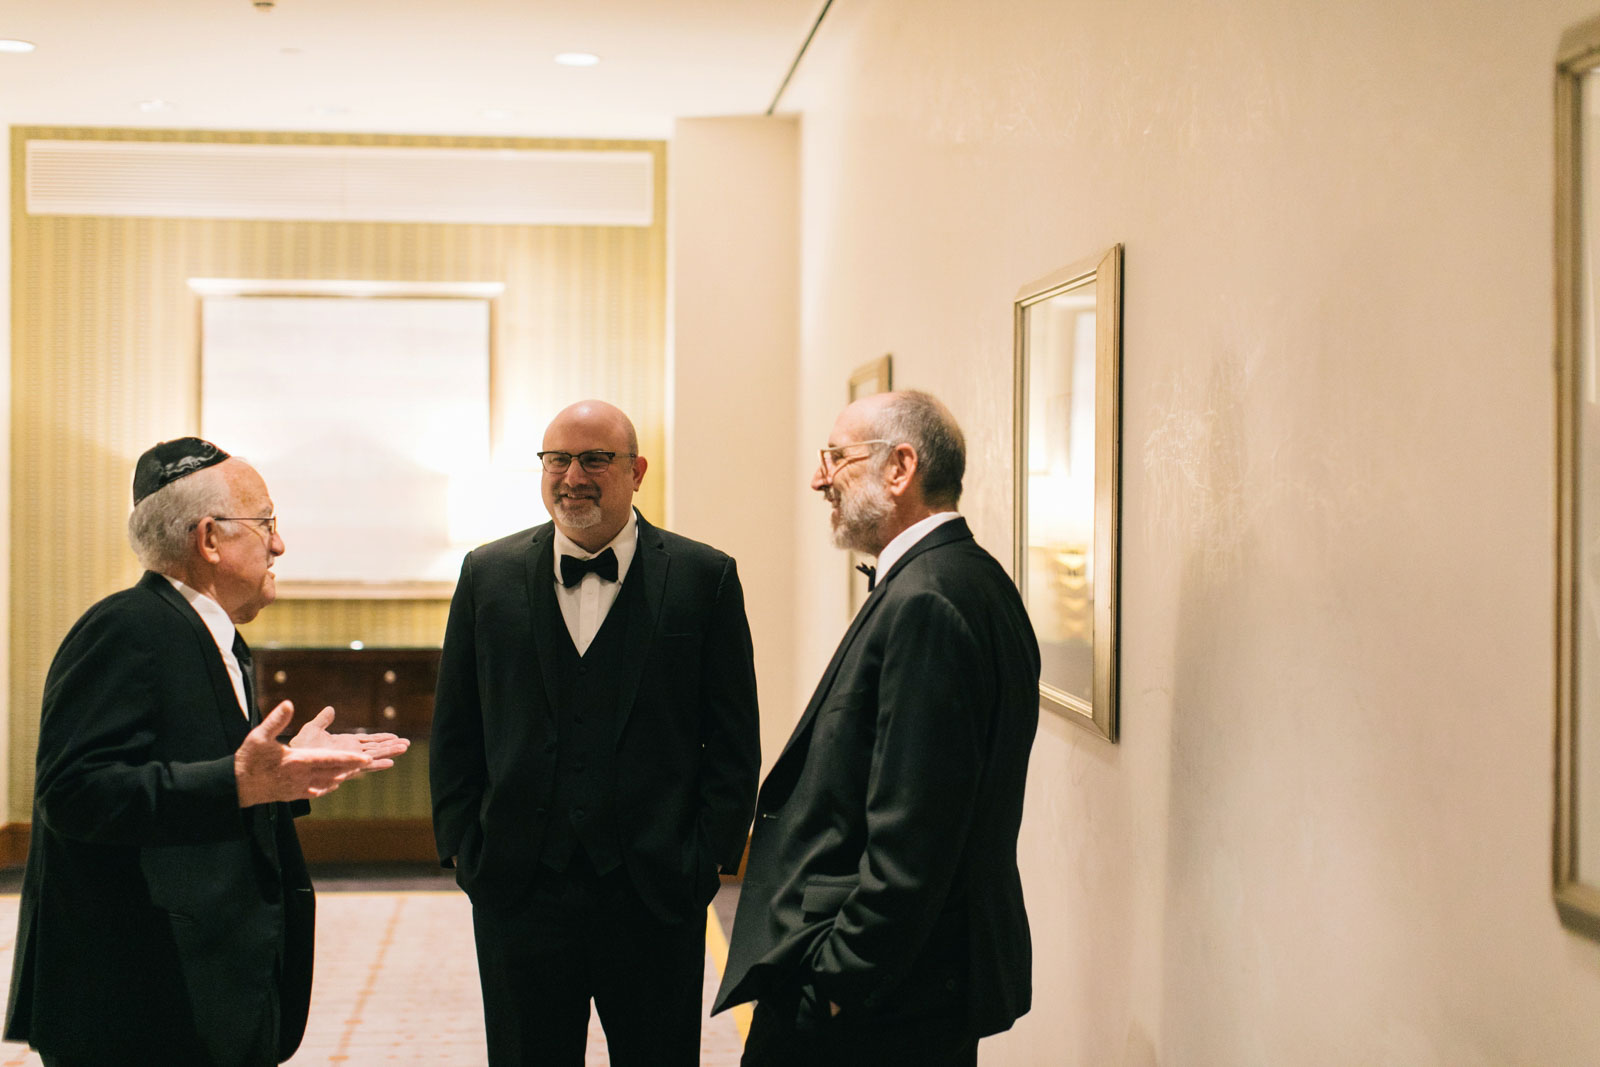 candid of wedding guests mingling before wedding ceremony at Ritz-Carlton Boston